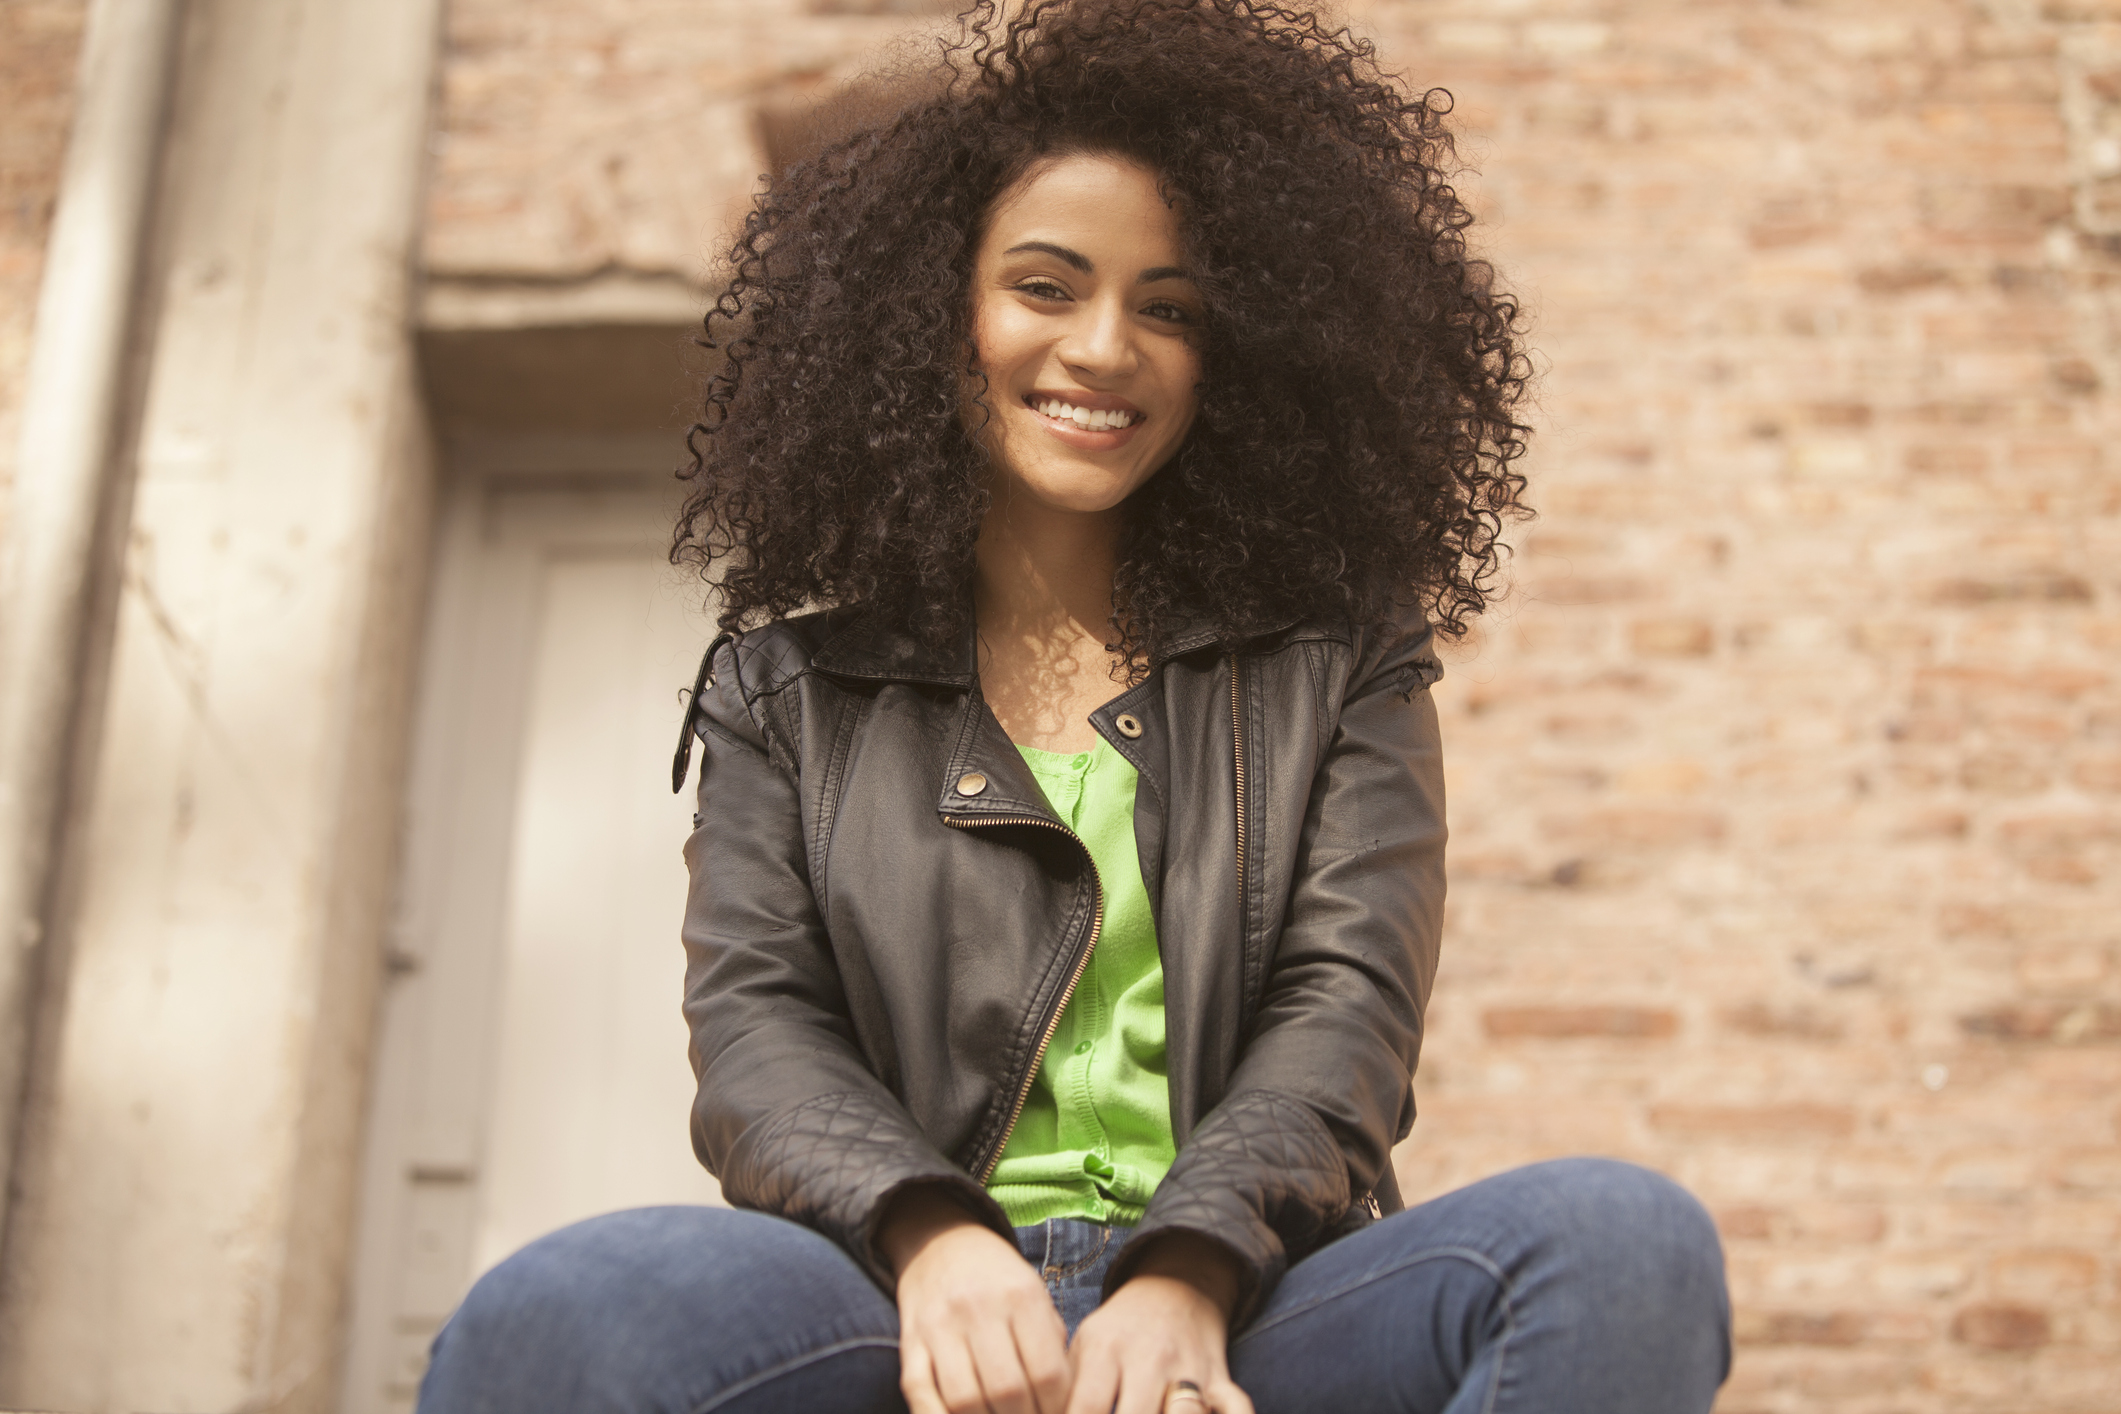 African american young woman smiling